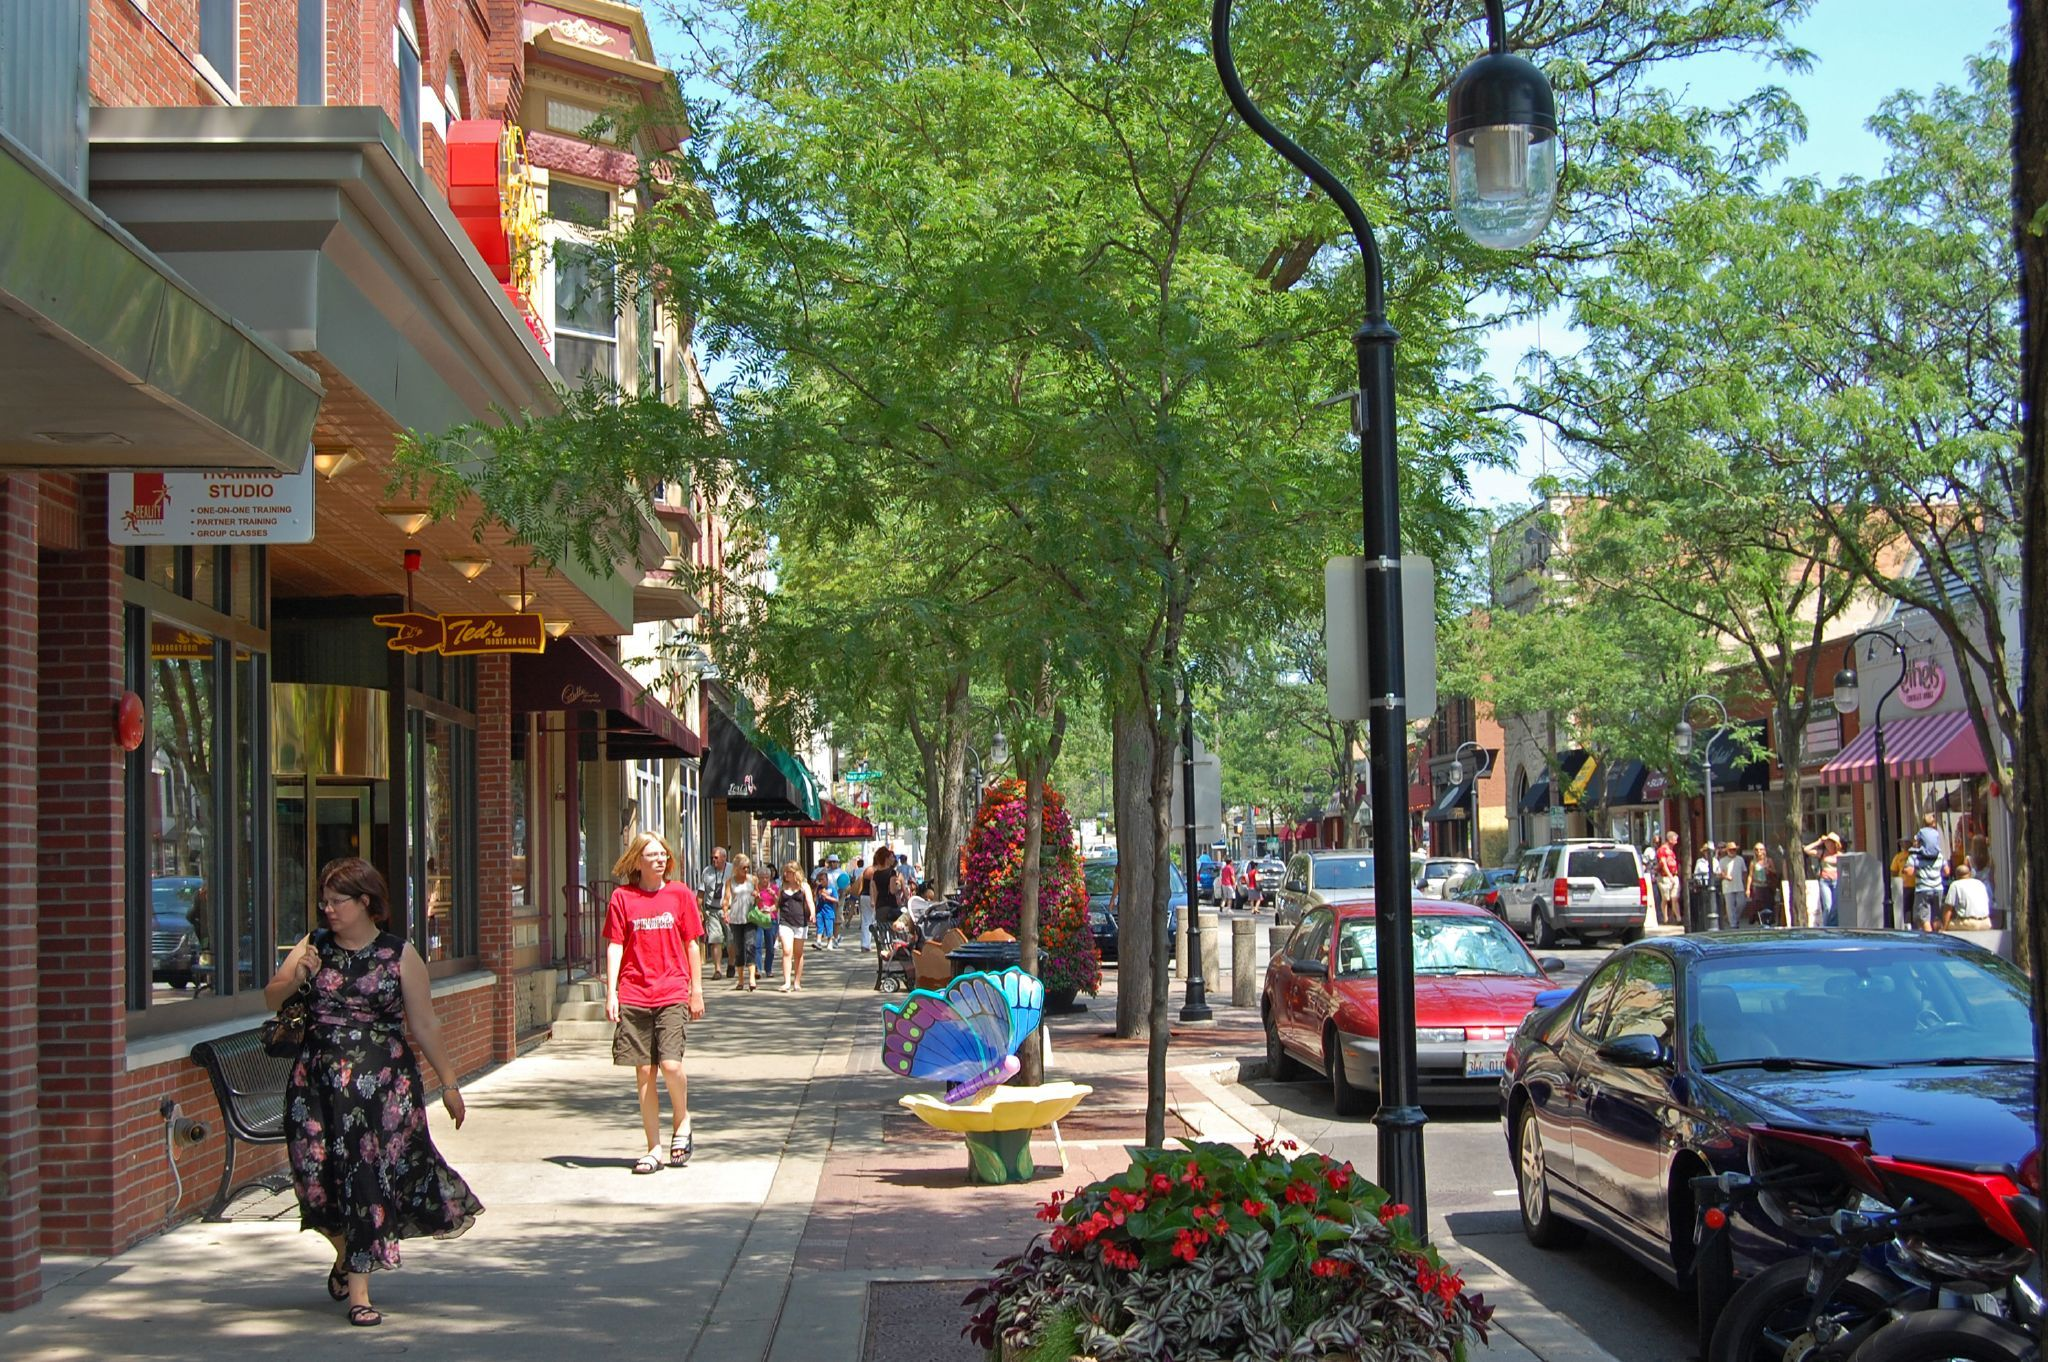 Fun things to do in Naperville this Summer